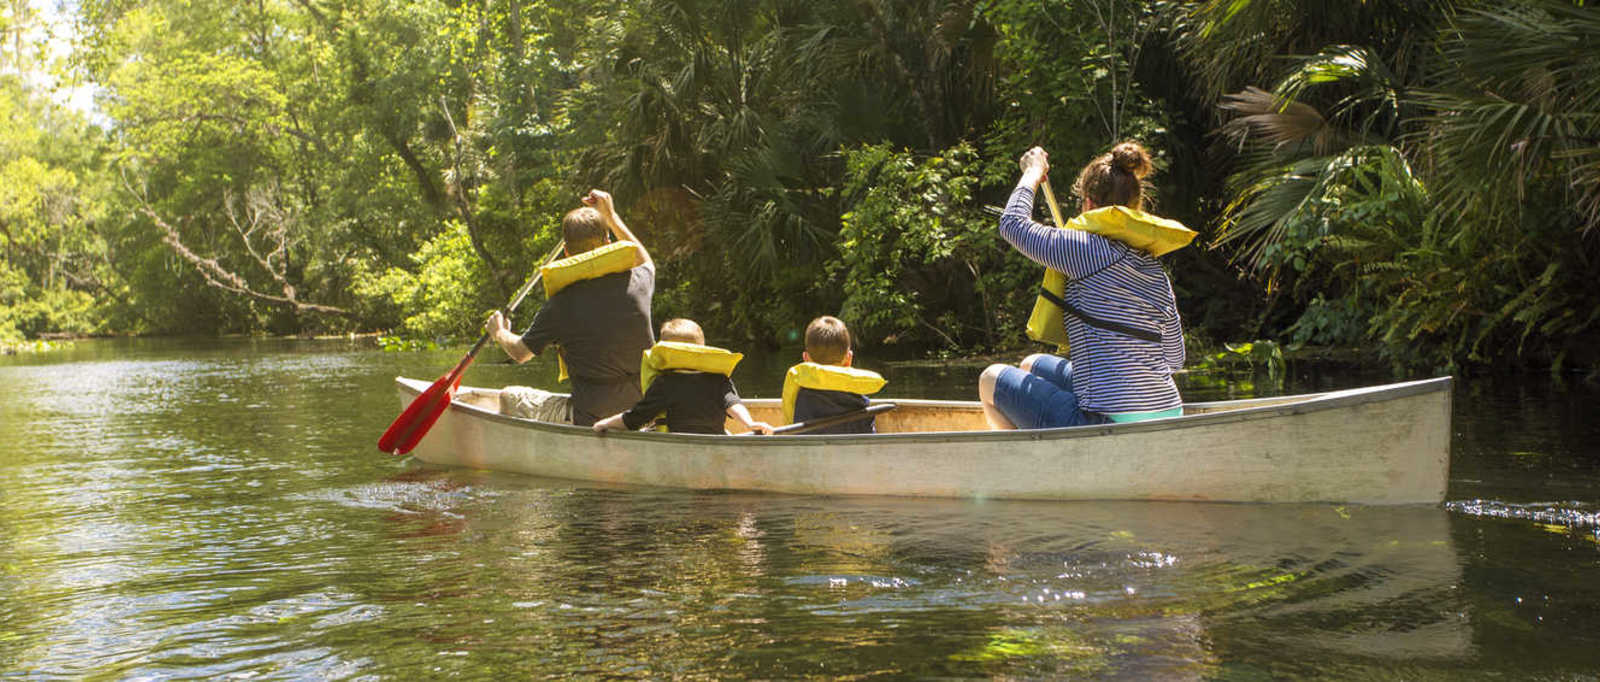 Family canoe ride down a beautiful tropical river